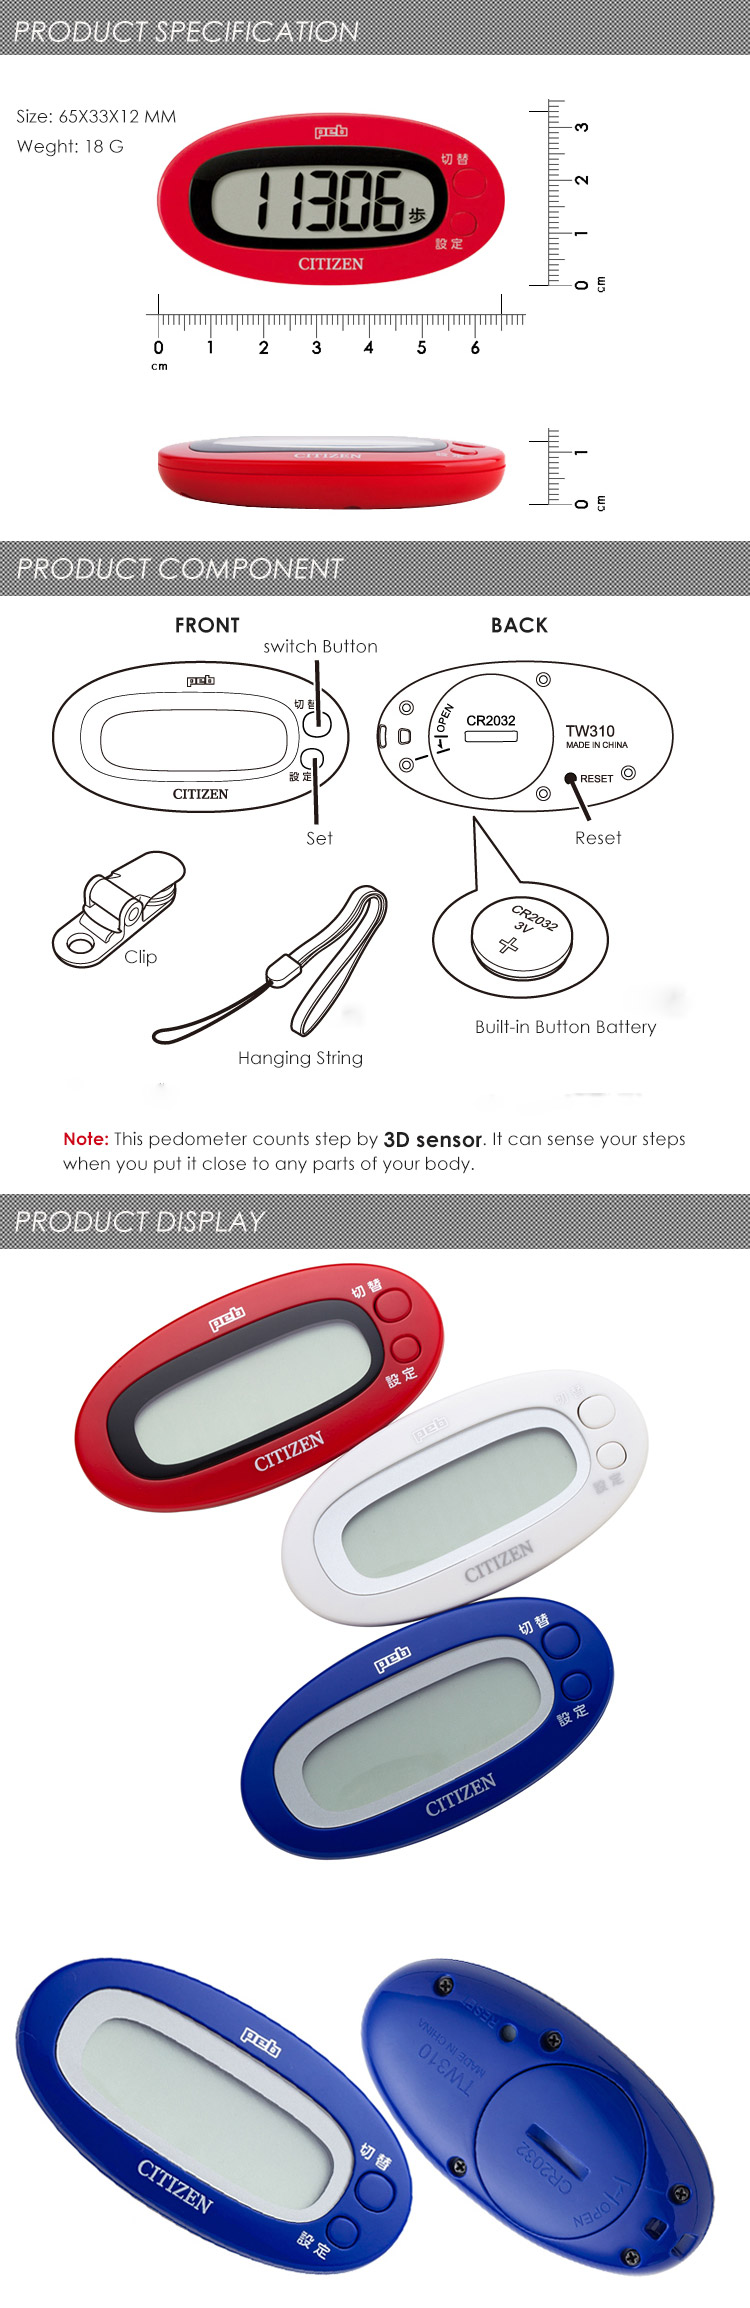 Large LCD Screen Pedometer for Old Men